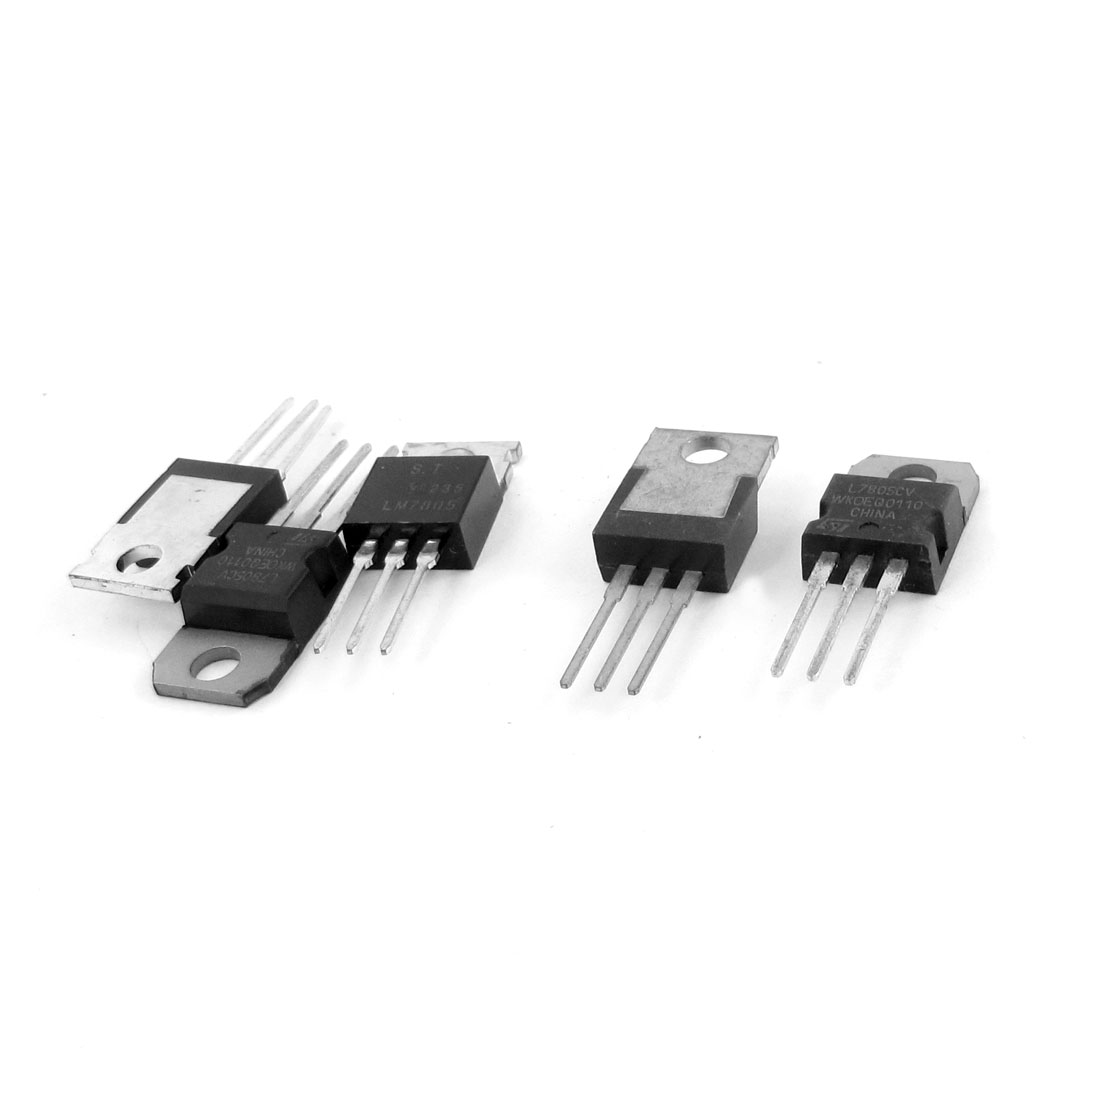 5 Pcs 3 Terminals 1.5A 5V L7805CV Postive Voltage Regulators